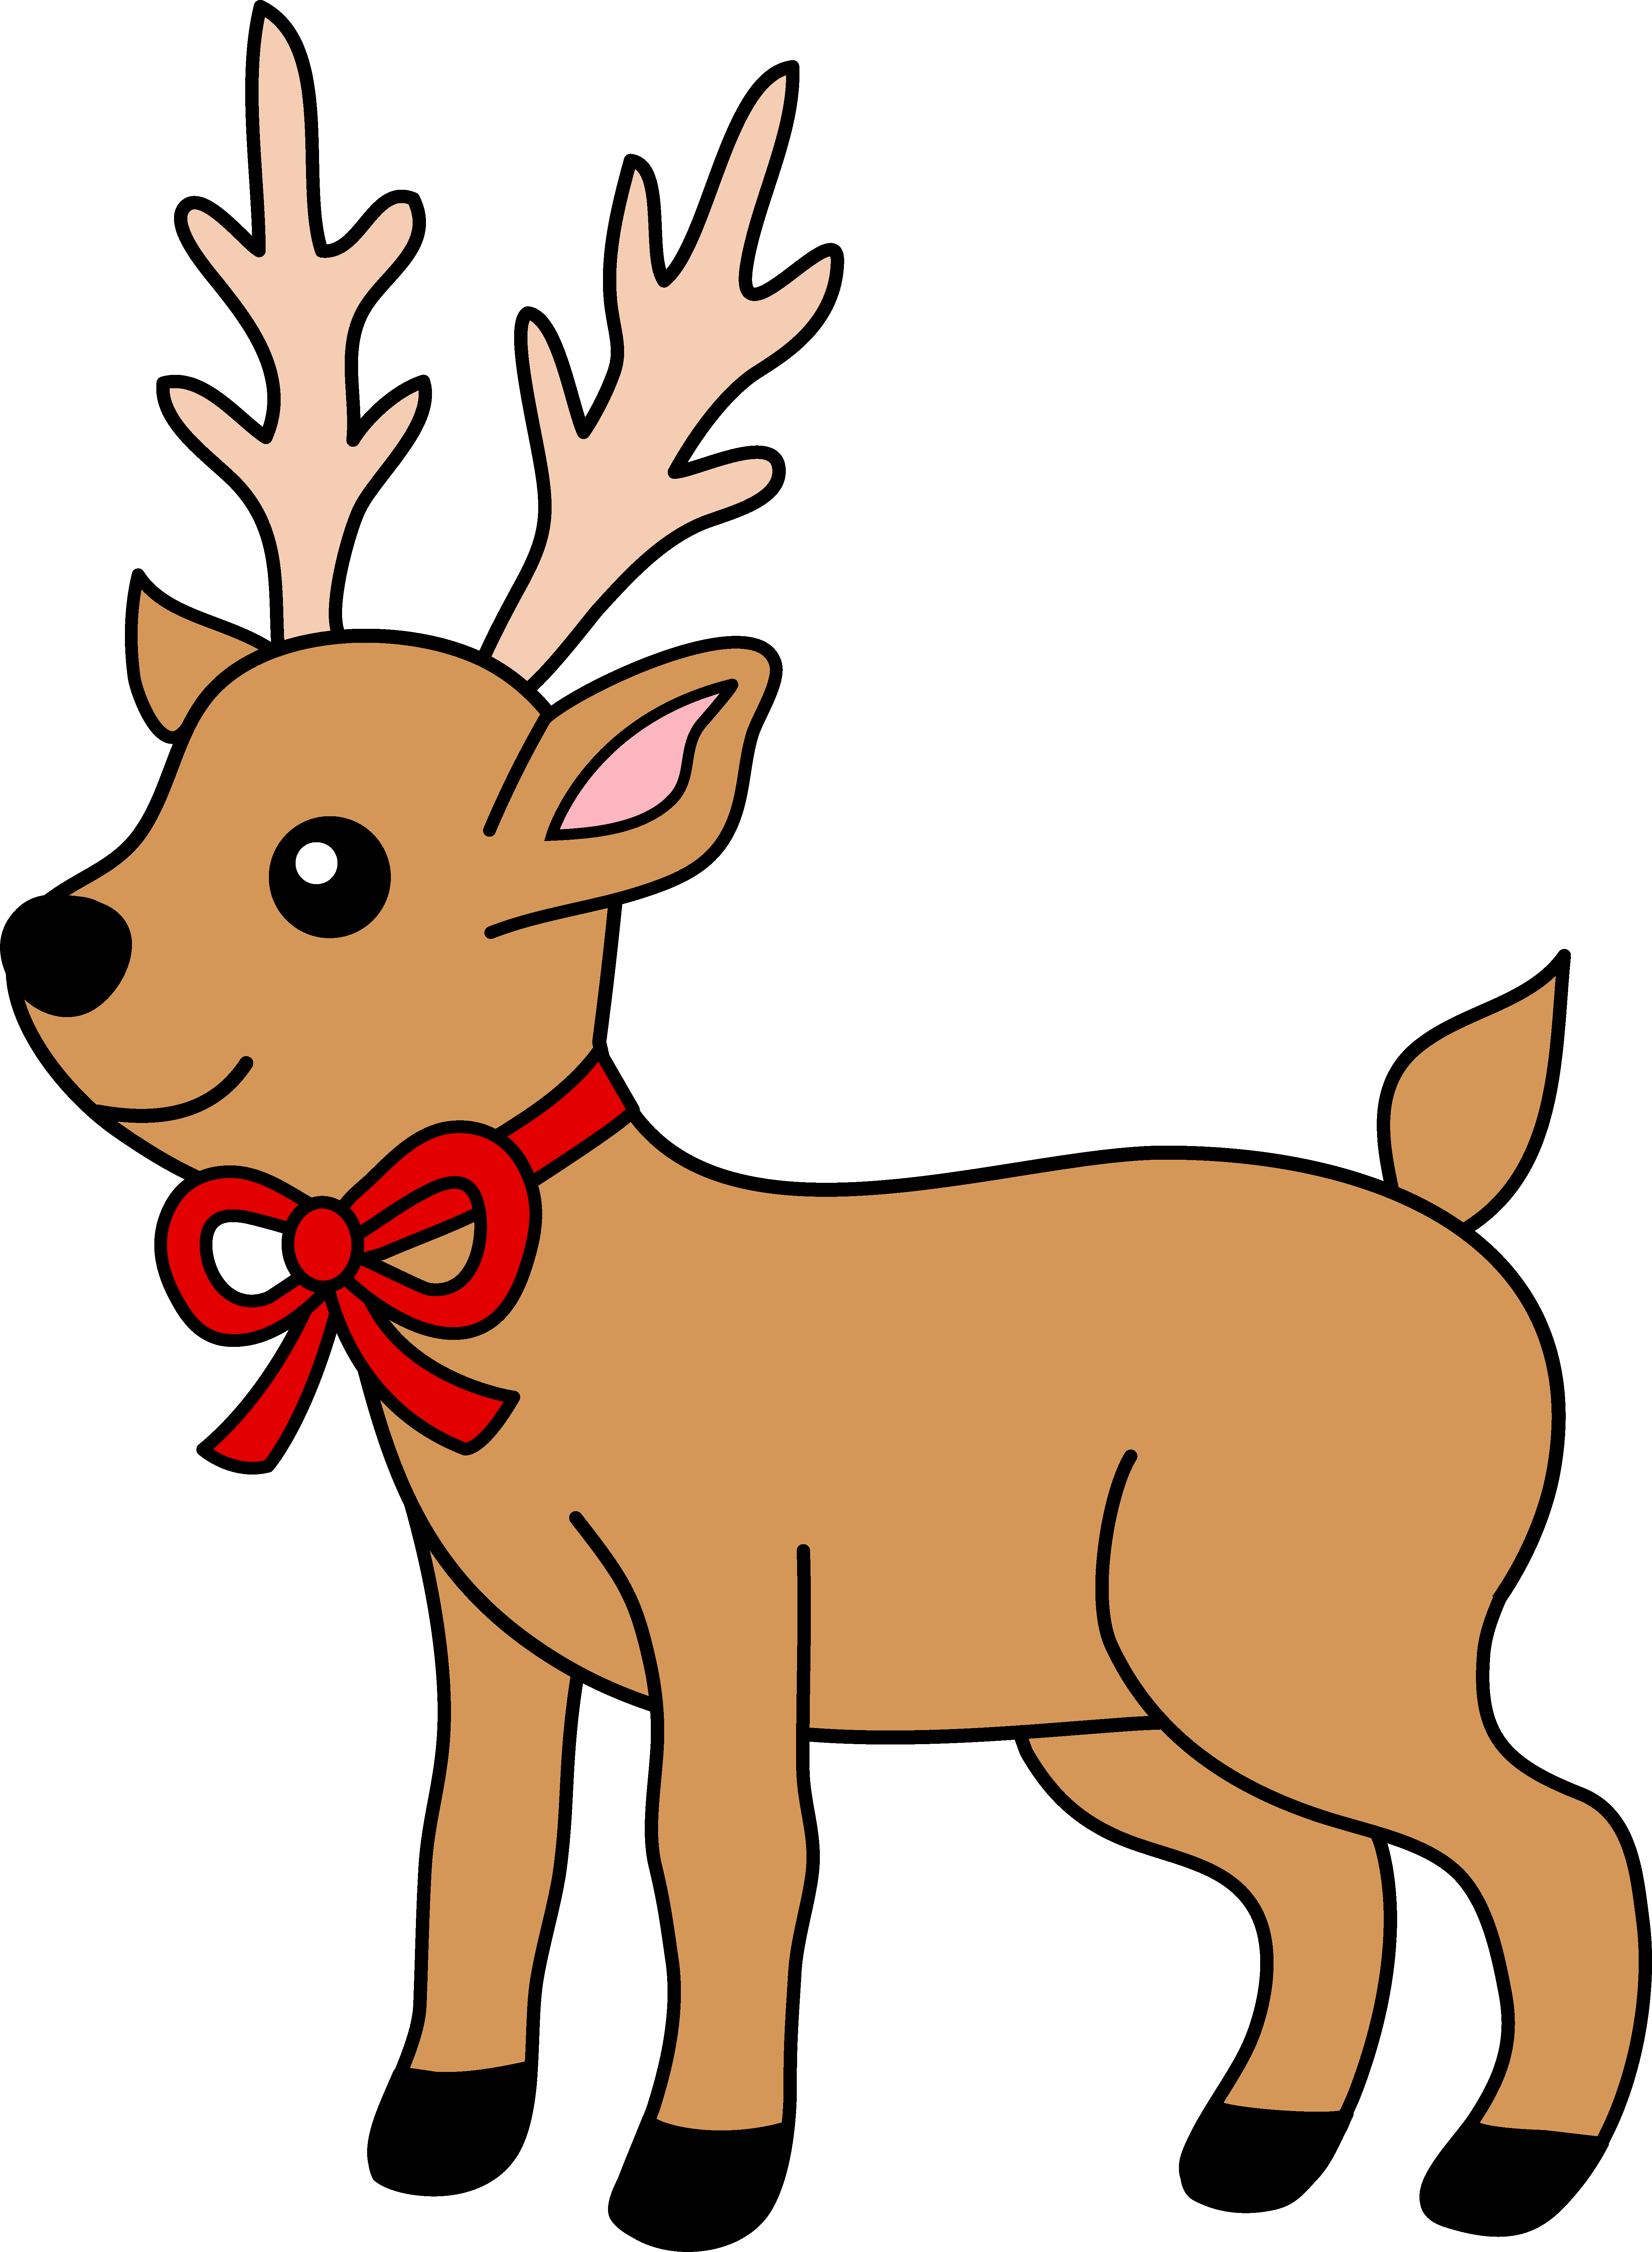 cool reindeer clipart rh worldartsme com clipart reindeer black and white clipart reindeer face